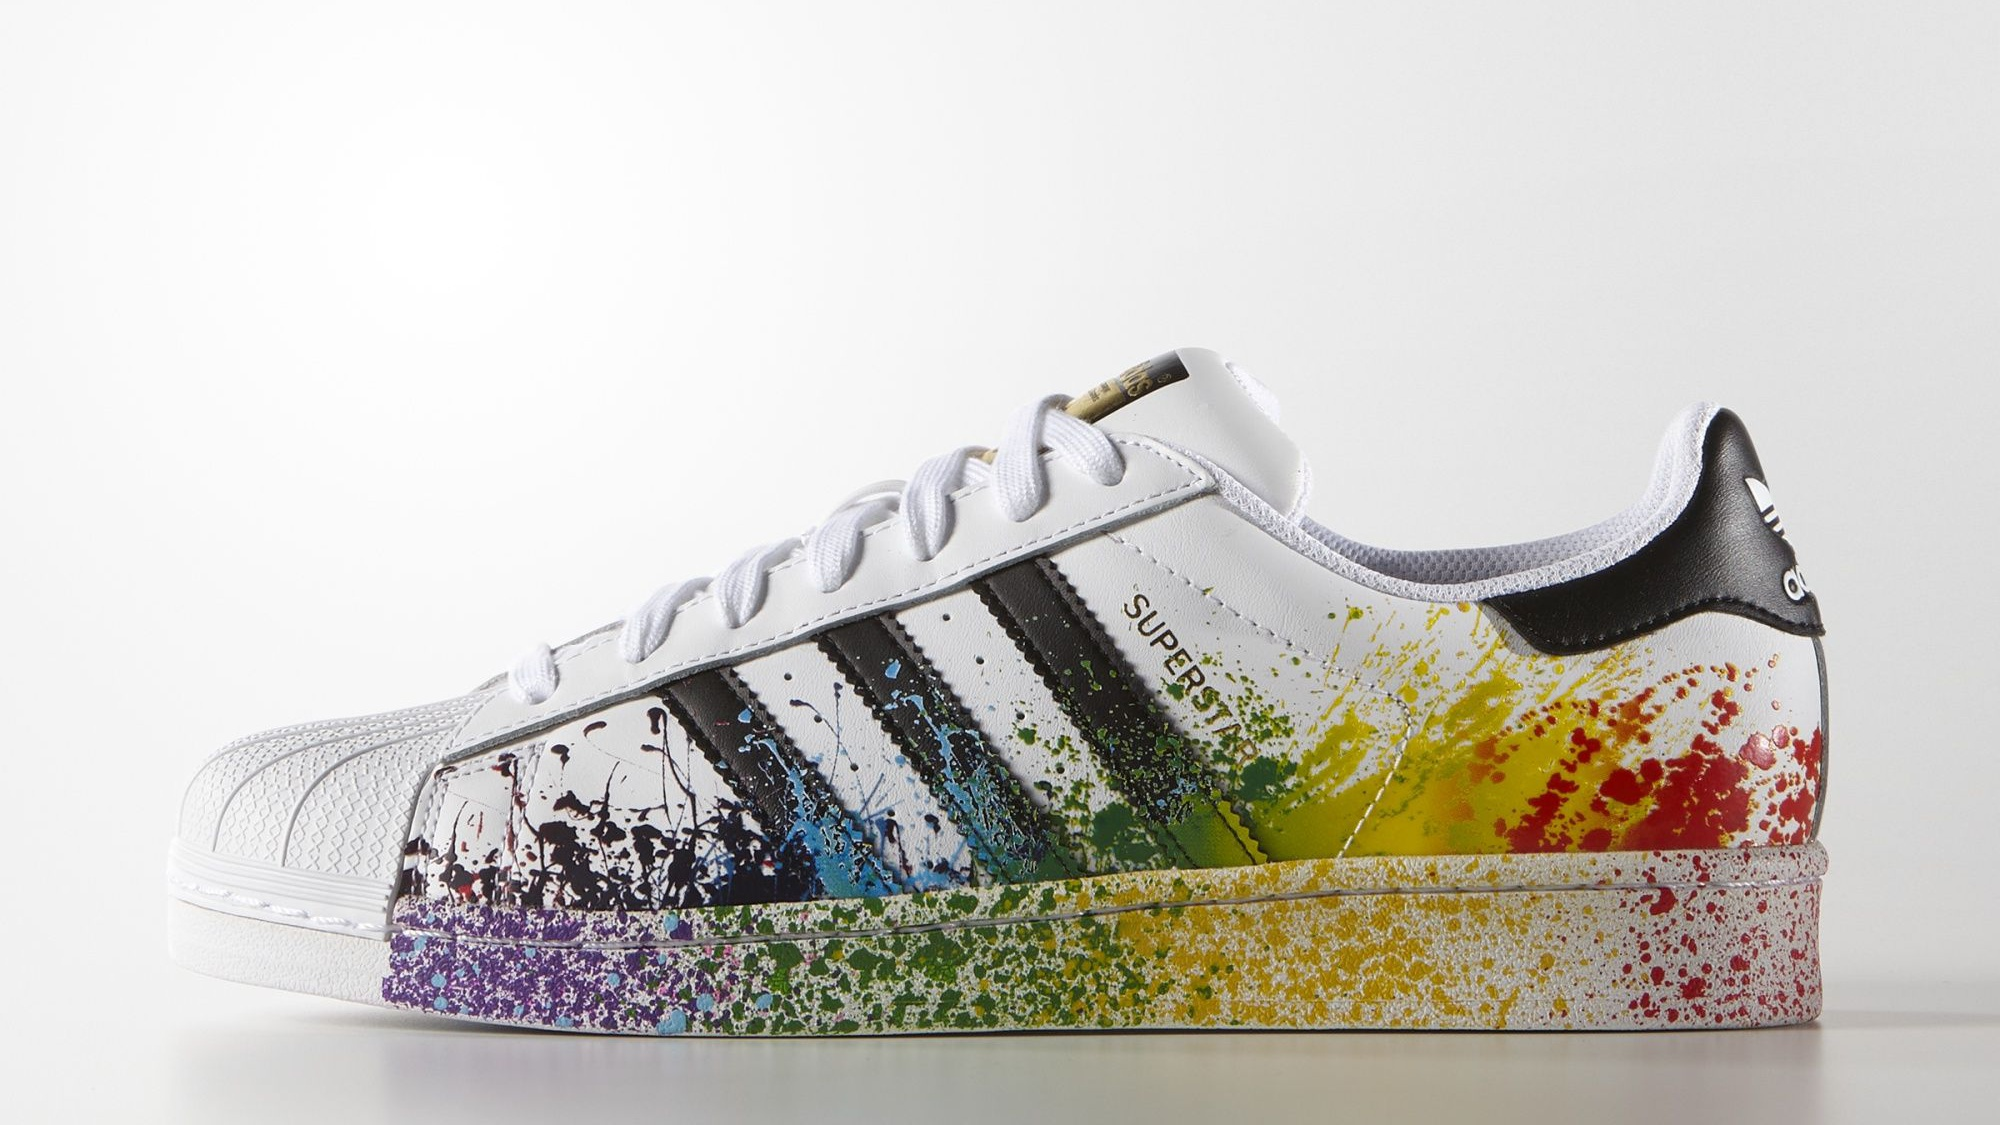 corrispondenza di colore colore attraente a buon mercato The spirited sneaker designs inspired by LGBT pride month — Quartz